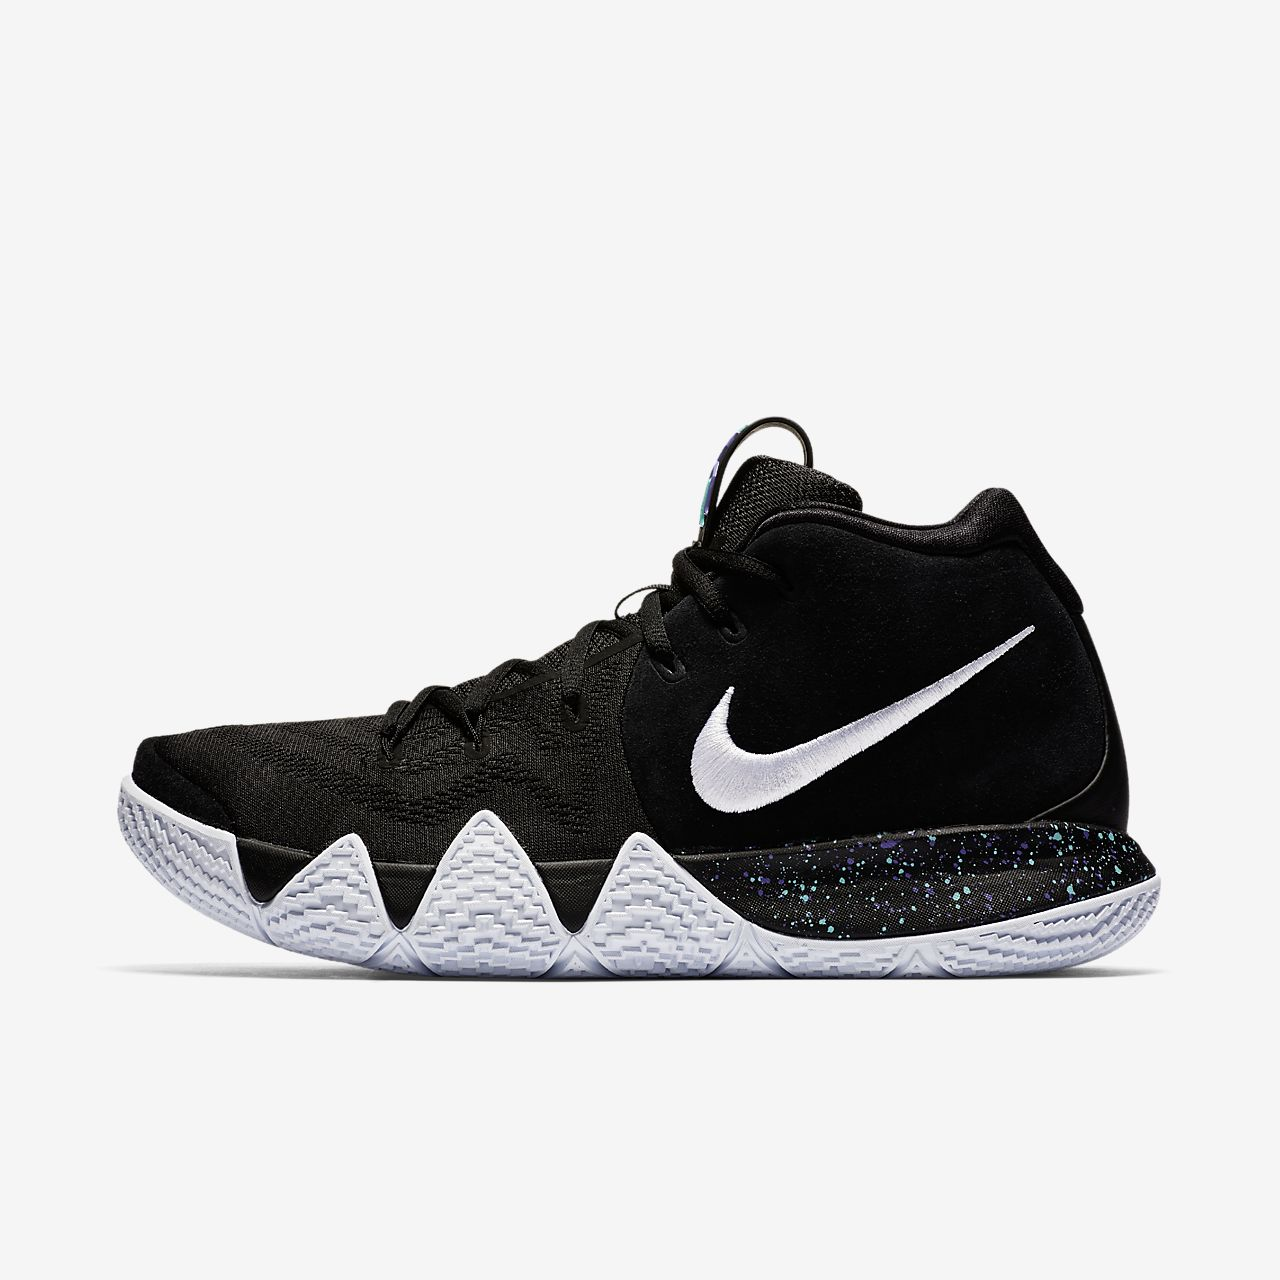 Kyrie 4 Basketball Shoe Nike Com Ro